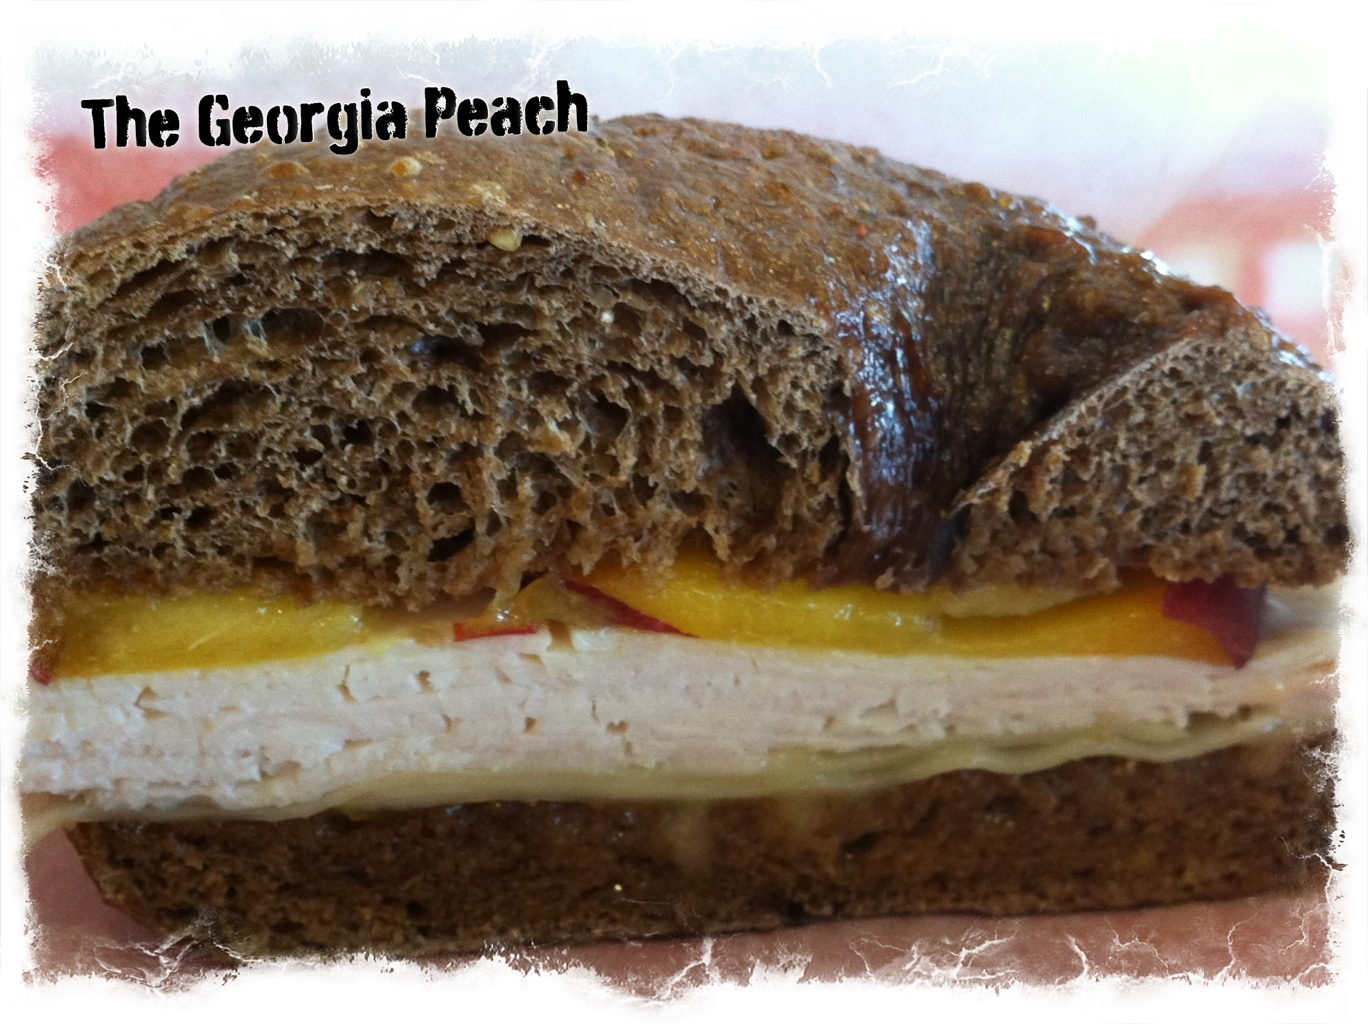 The Georgia Peach Sandwich at Bagelheads